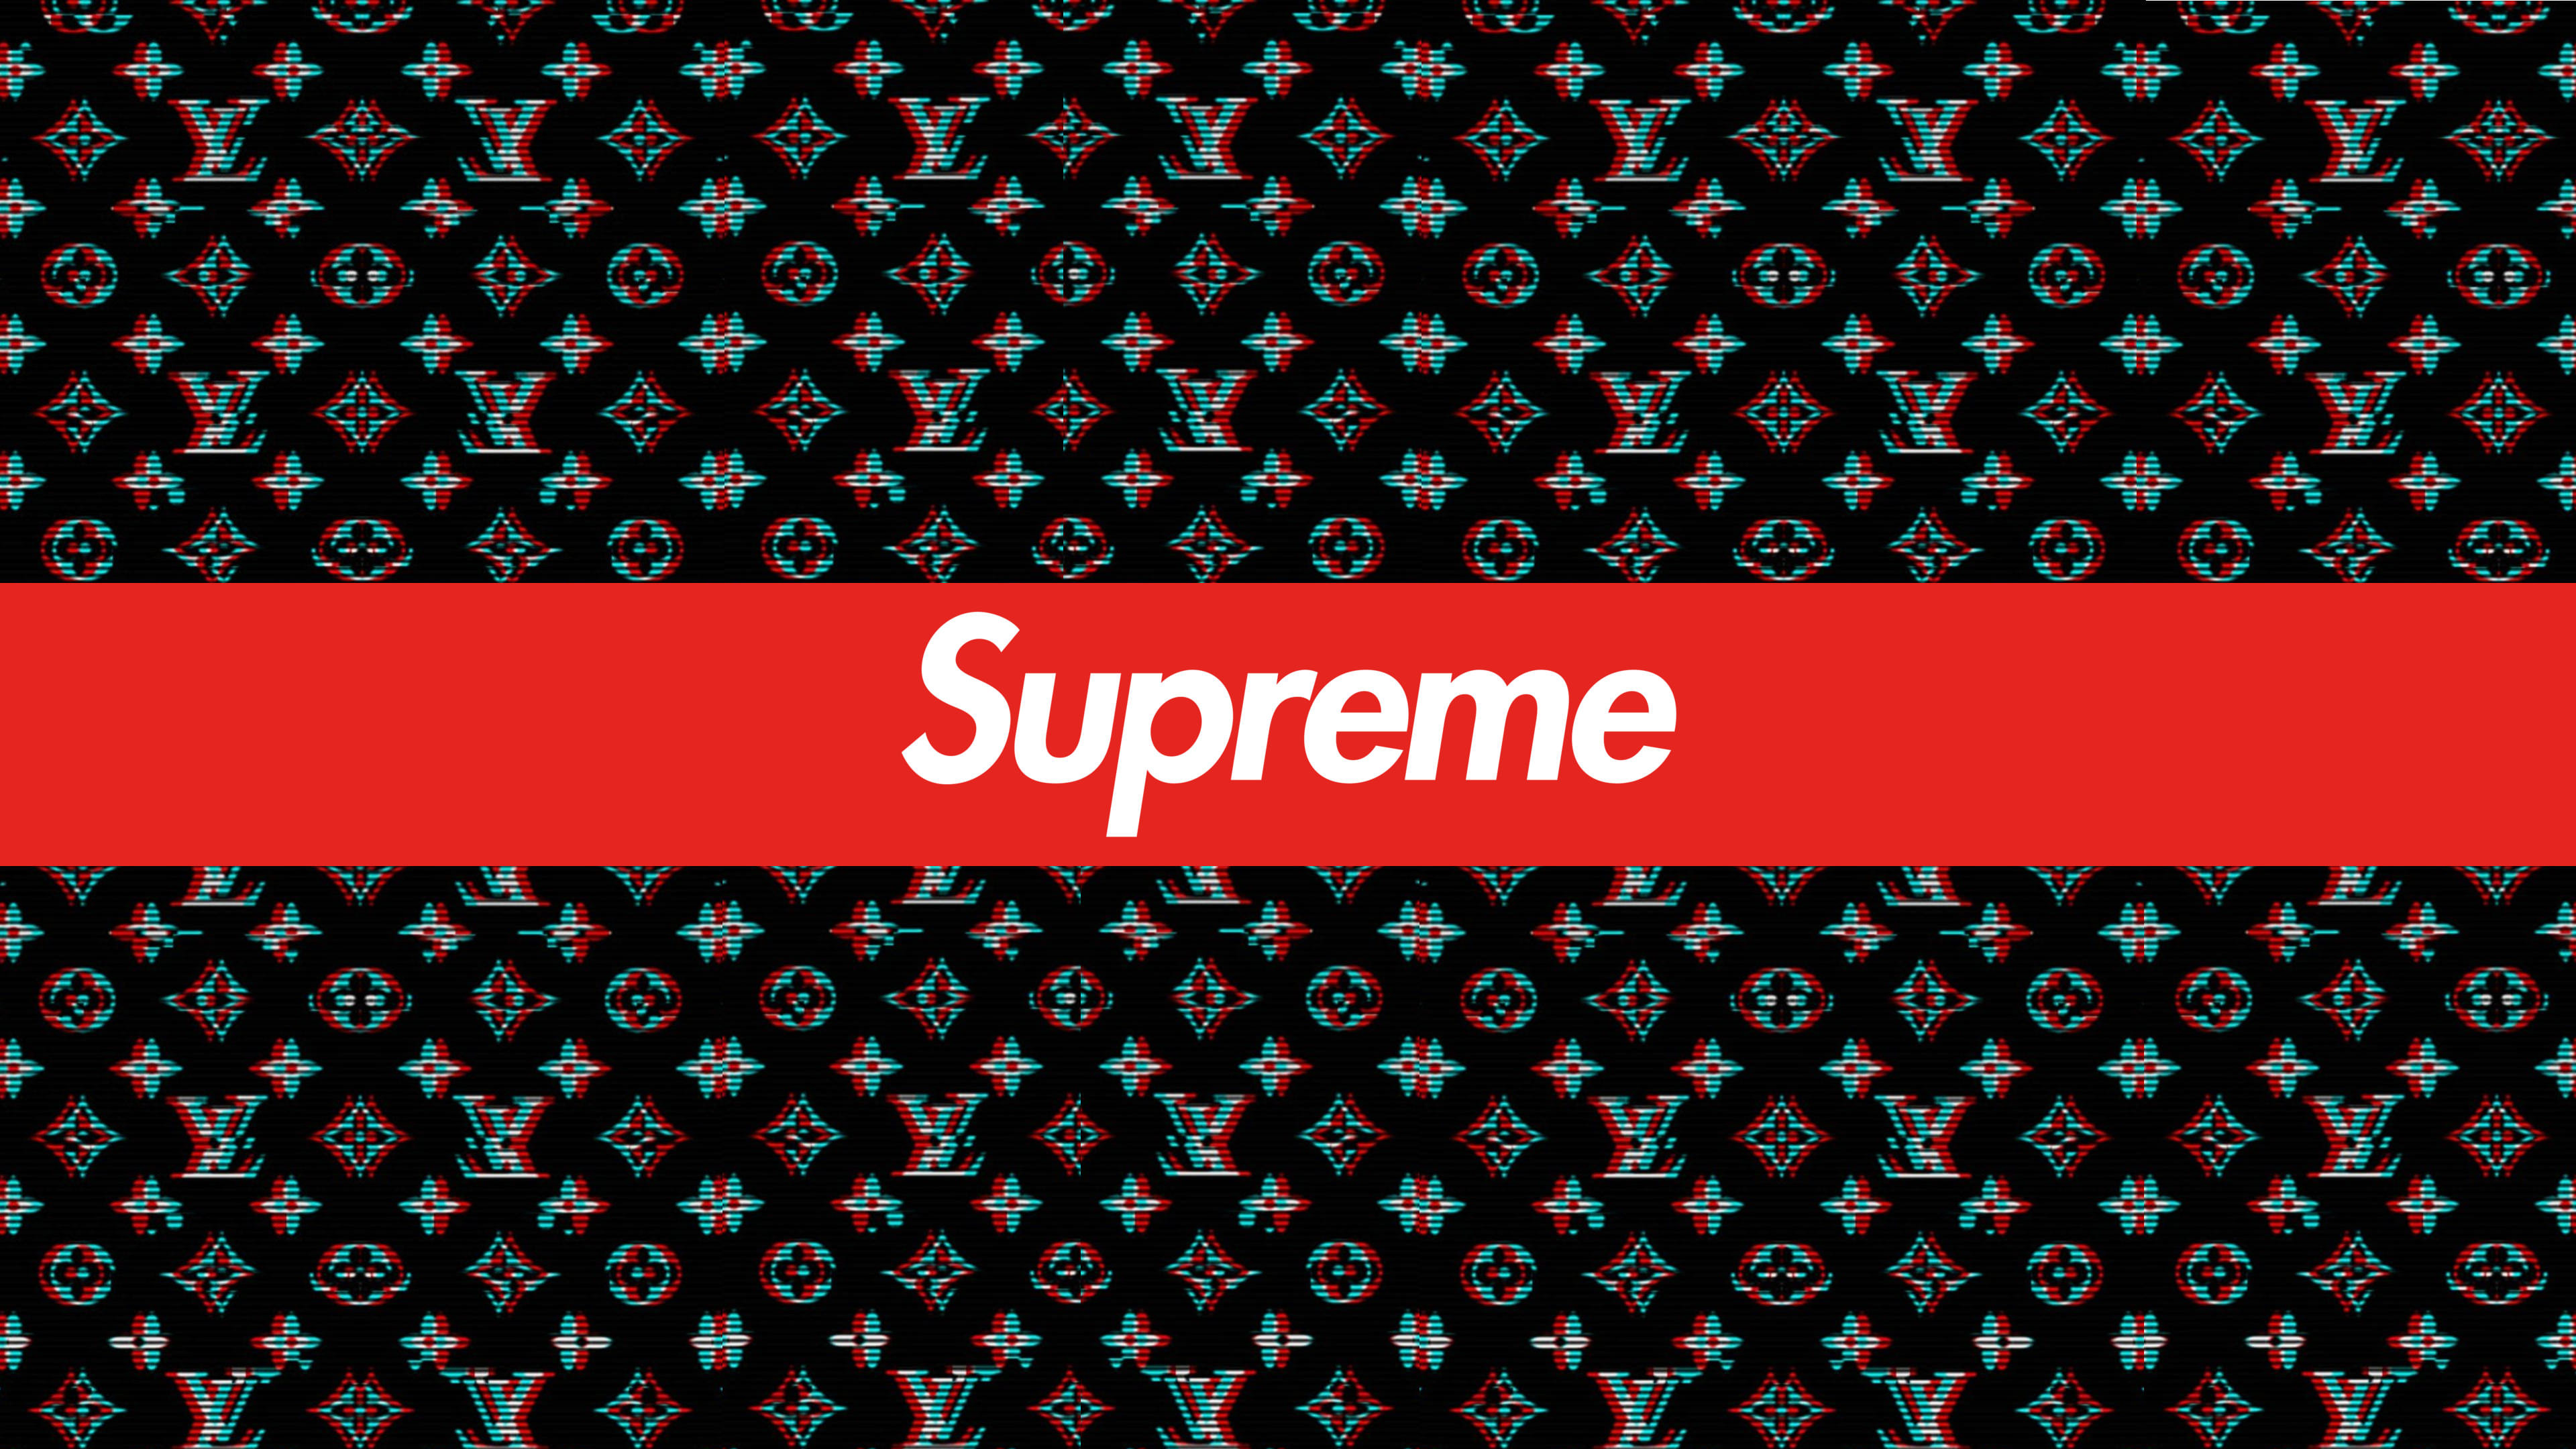 Res: 3840x2160, by gxgang instagram.com/gxgangig/ supreme wallpapers